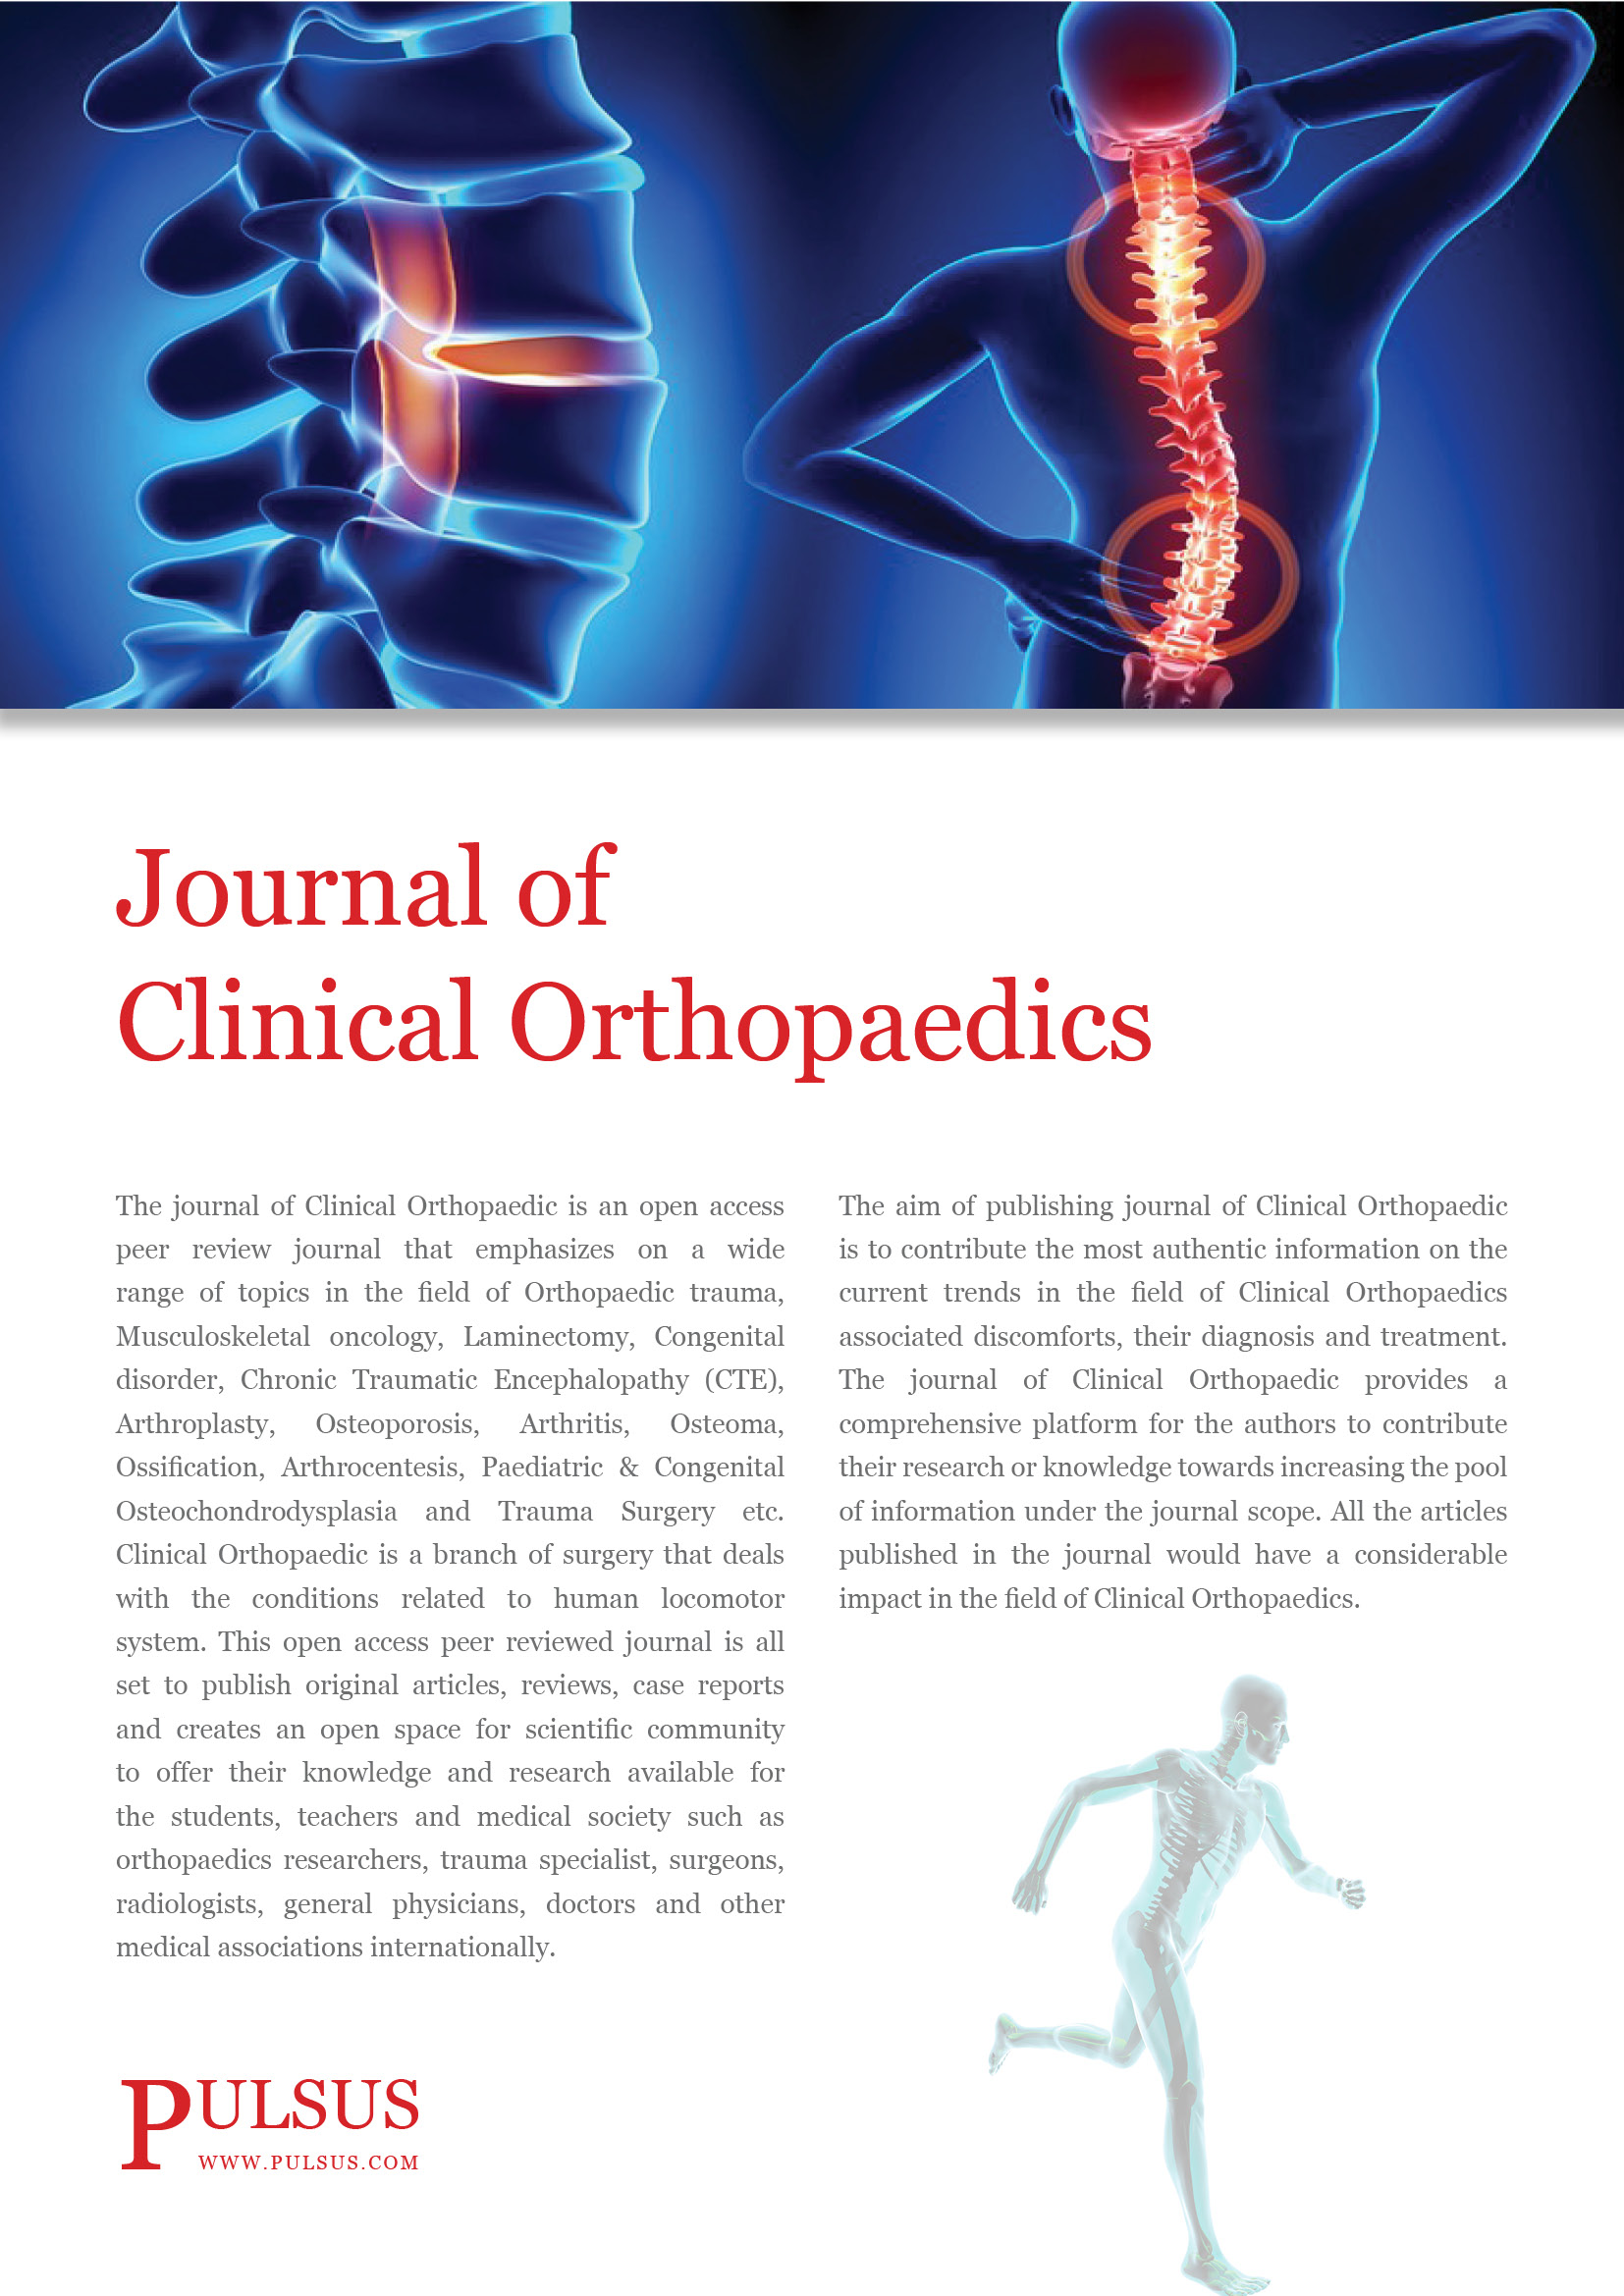 Journal of Clinical Orthopaedics